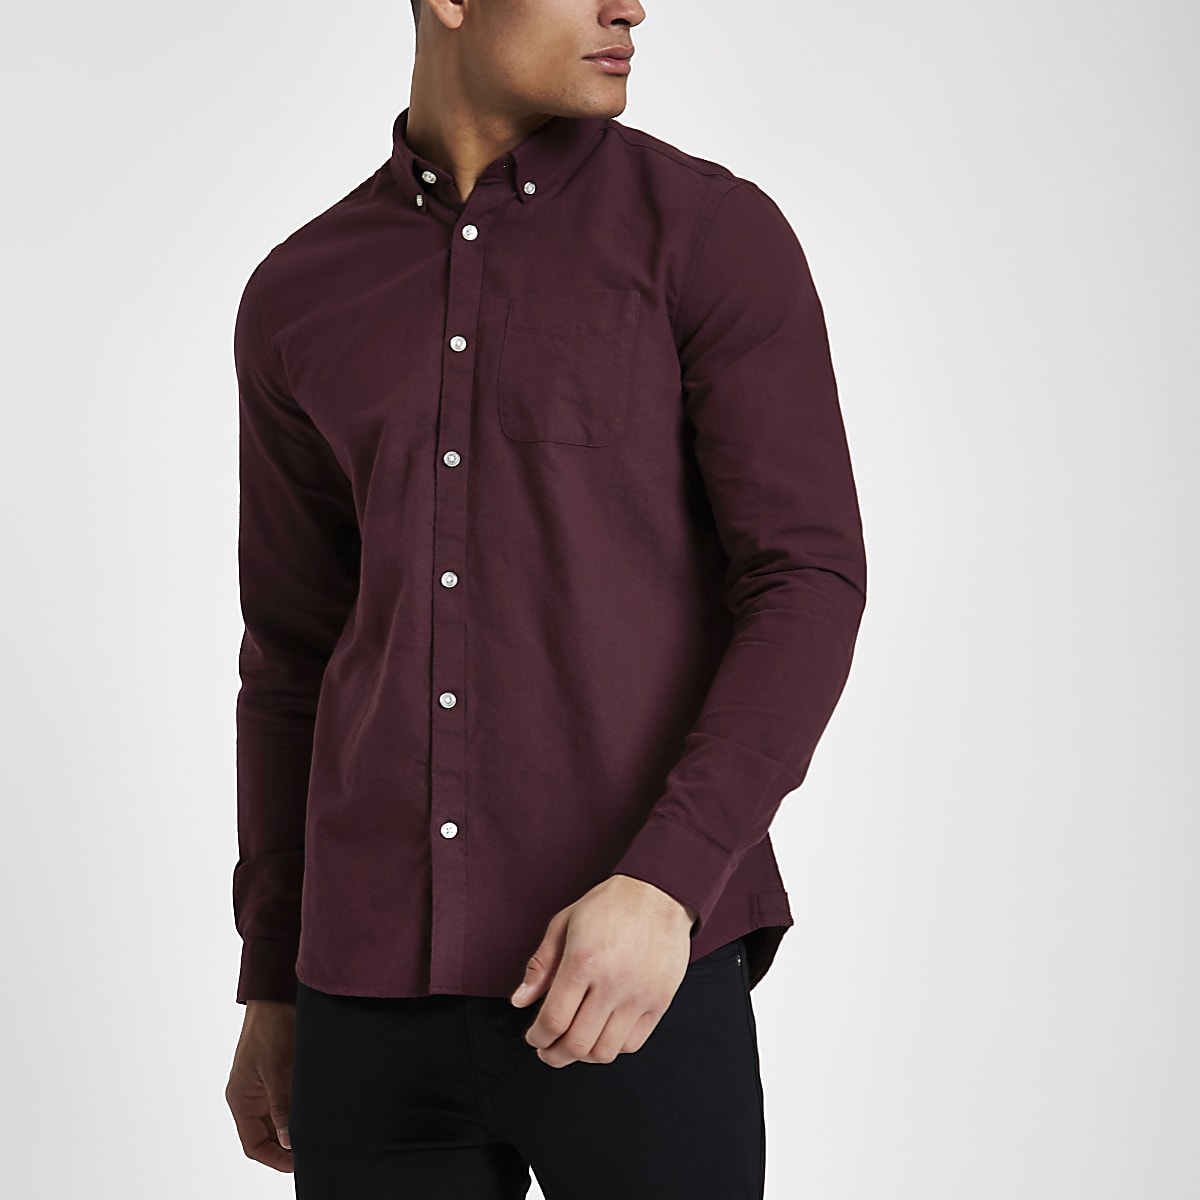 Purple long sleeve Oxford shirt